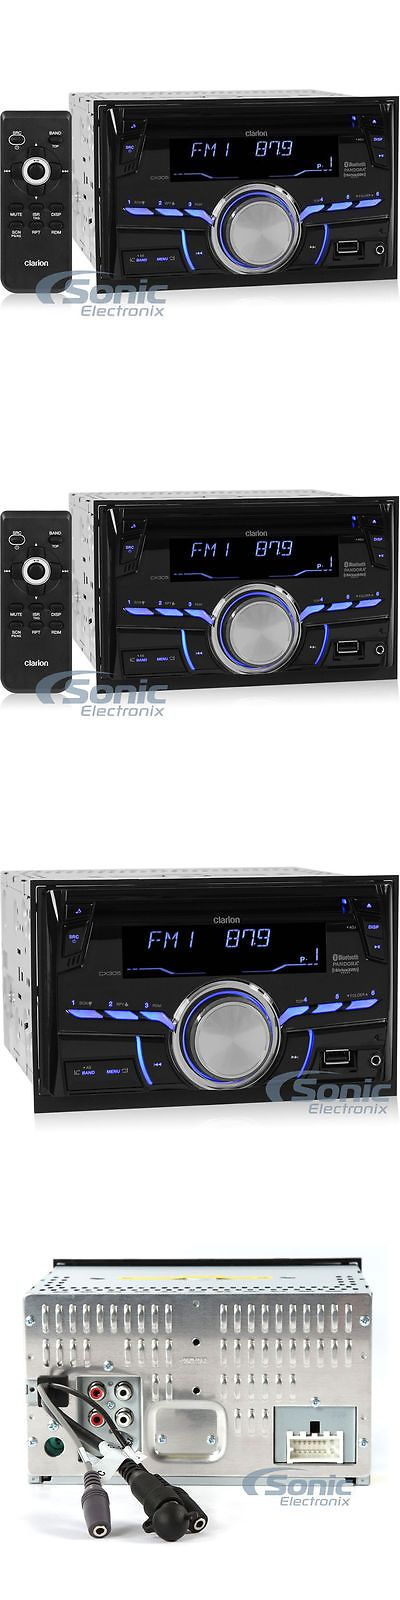 Vehicle Electronics And GPS: Clarion Cx305 Double Din Bluetooth Cd Car Stereo Receiver W Usb Aux Inputs -> BUY IT NOW ONLY: $119 on eBay!